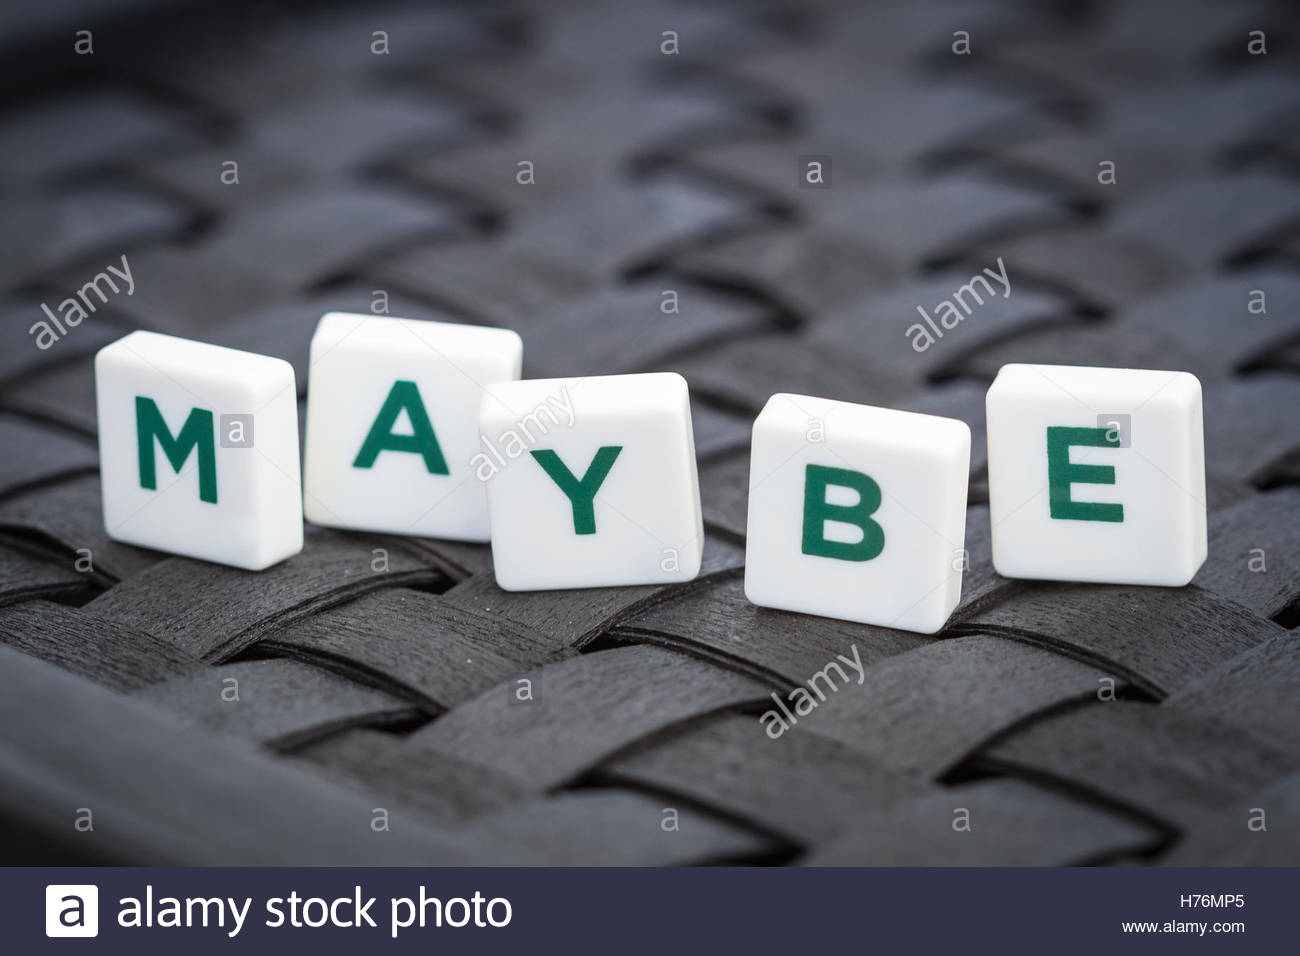 Word 'maybe' made from plastic alphabet blocks, stands in dark background. - Stock Image